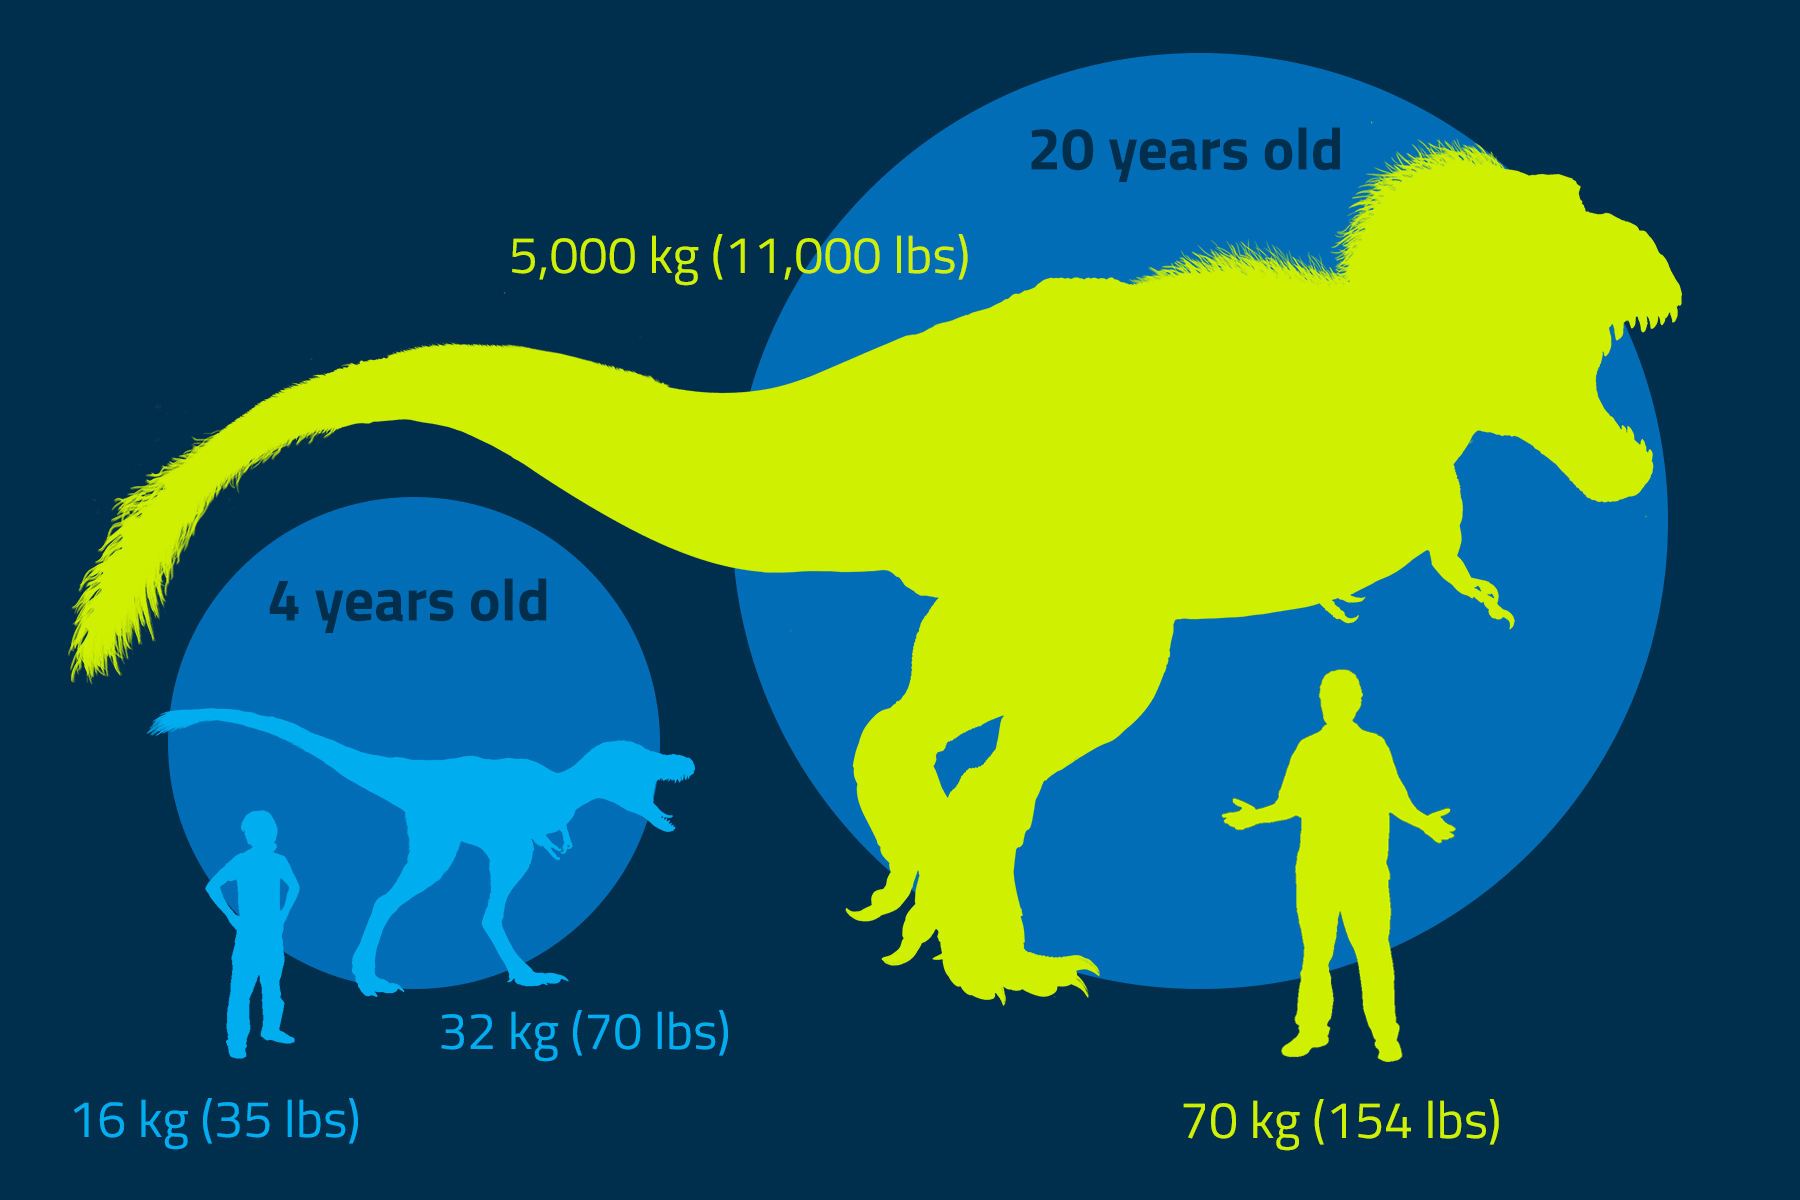 Silhouette of a man beside silhouette of an adult T. rex.